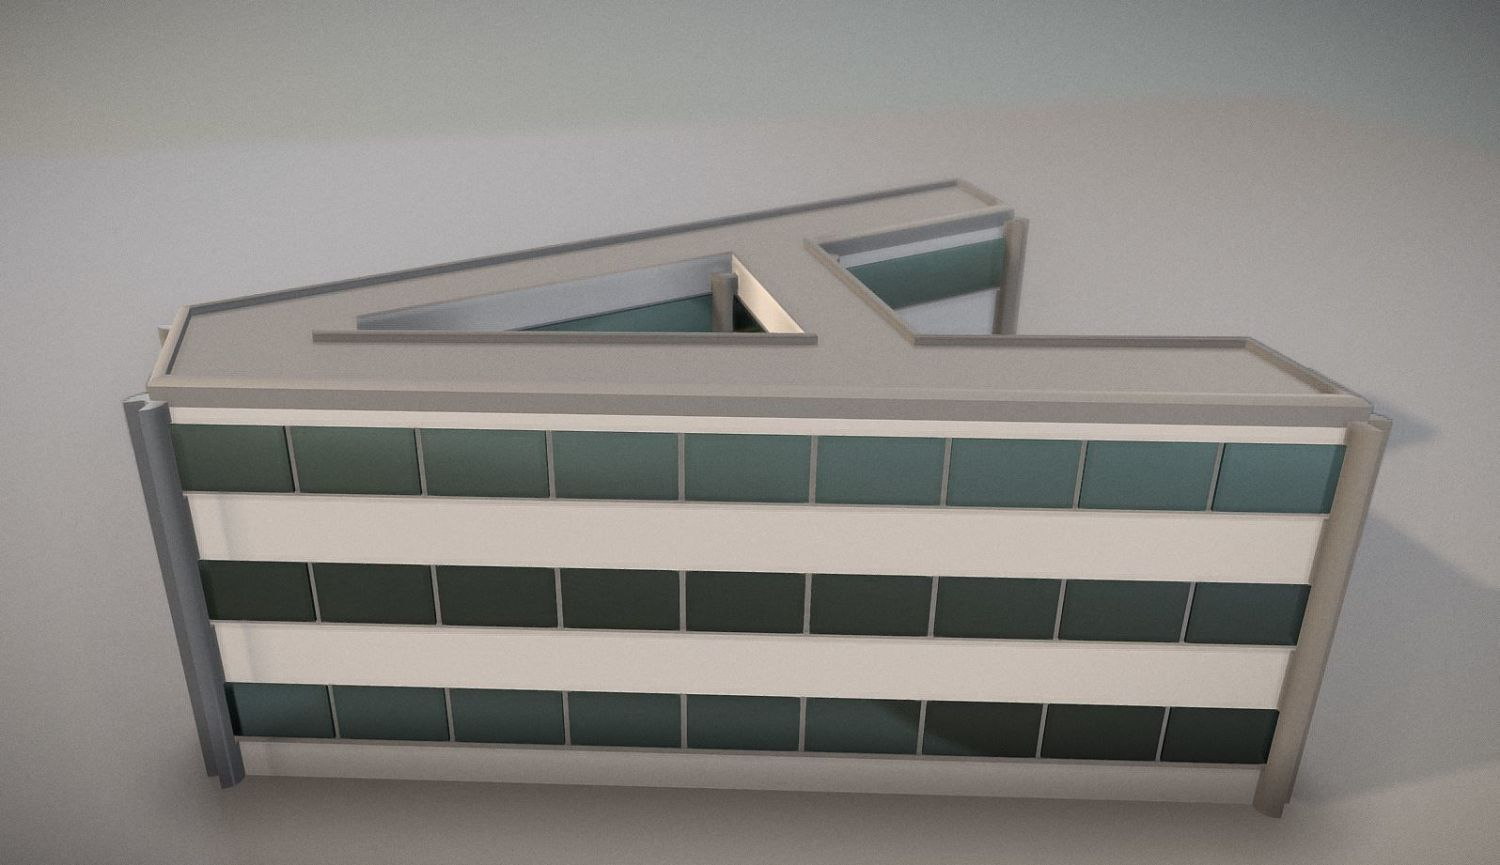 City Building Design A-1 - Buy Royalty Free 3D model by VIS-All-3D